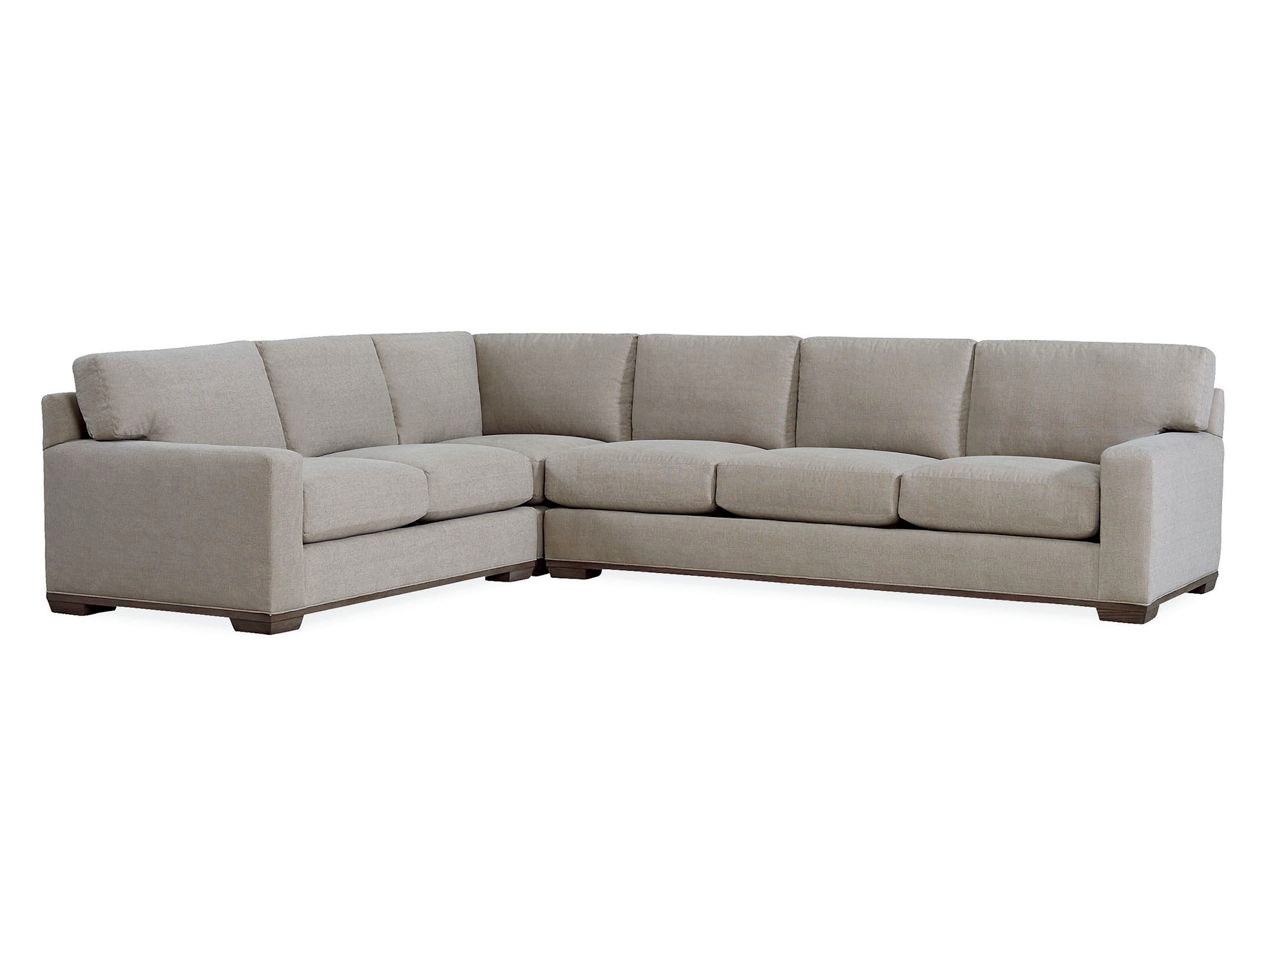 Sofa Sectionals With Bed Fremont Sectional Series Upholstered Sectionals Sofas